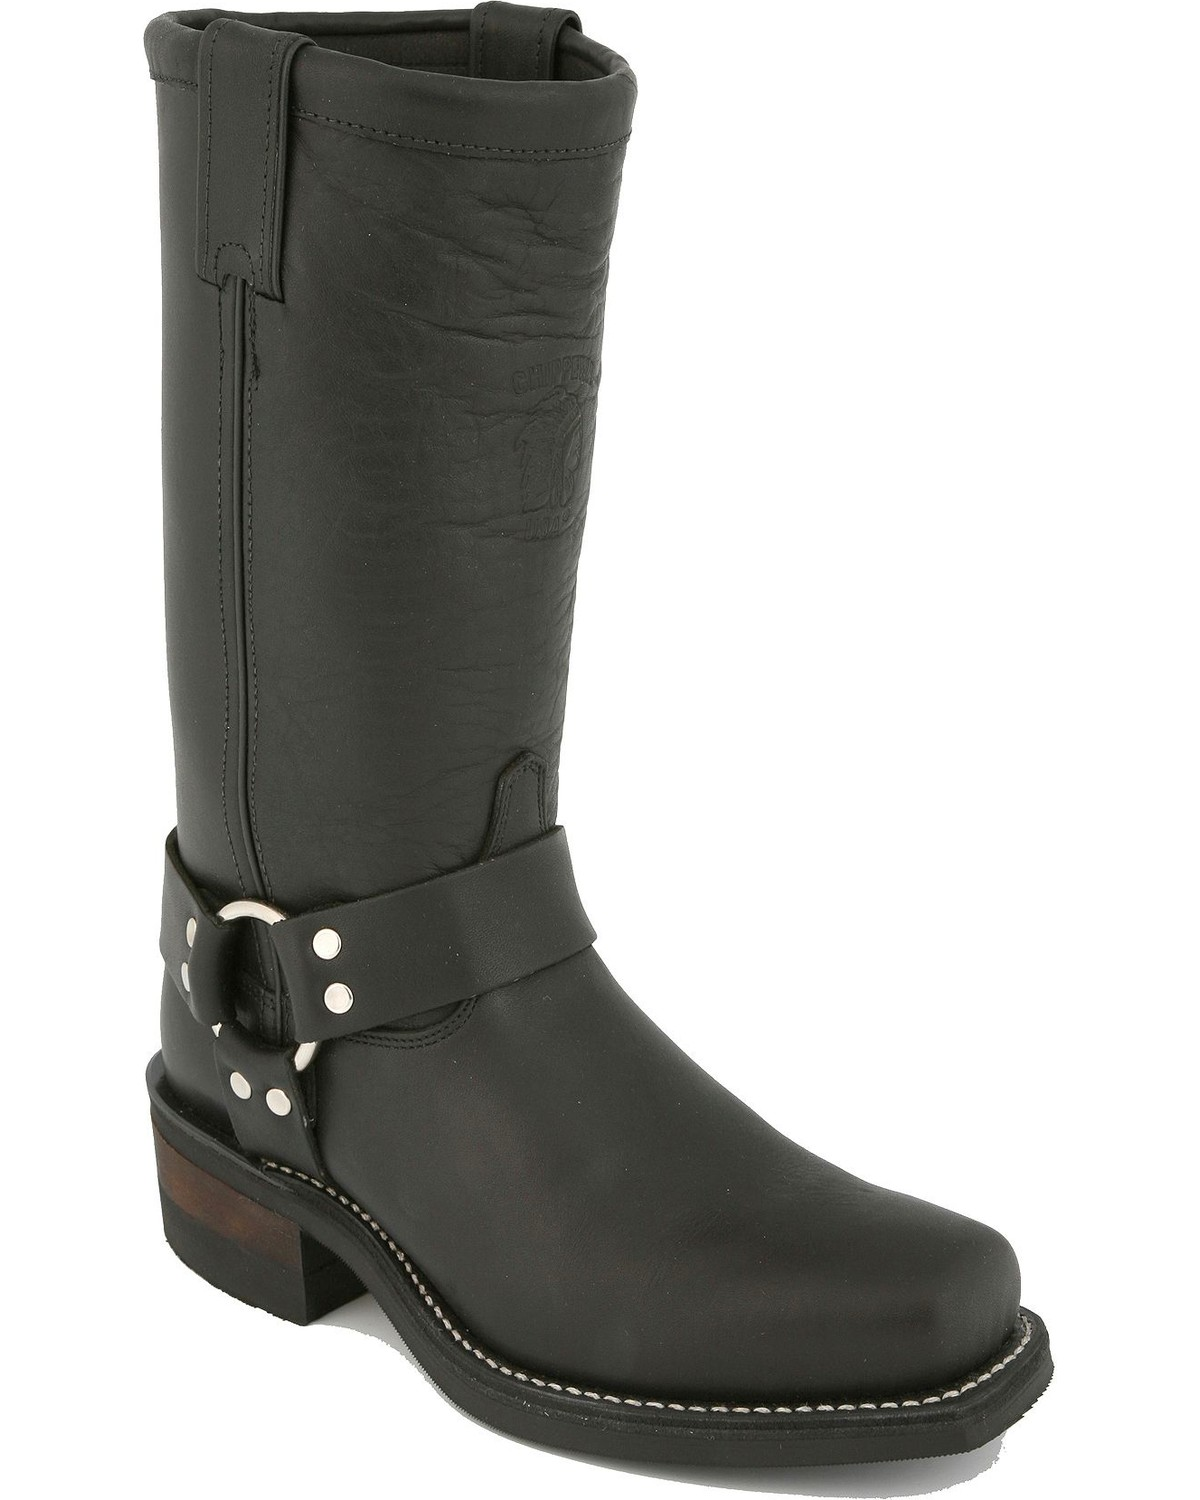 Buy Durango BT Boot (Little Kid) and other Boots at factorshuf.tk Our wide selection is eligible for free shipping and free returns.